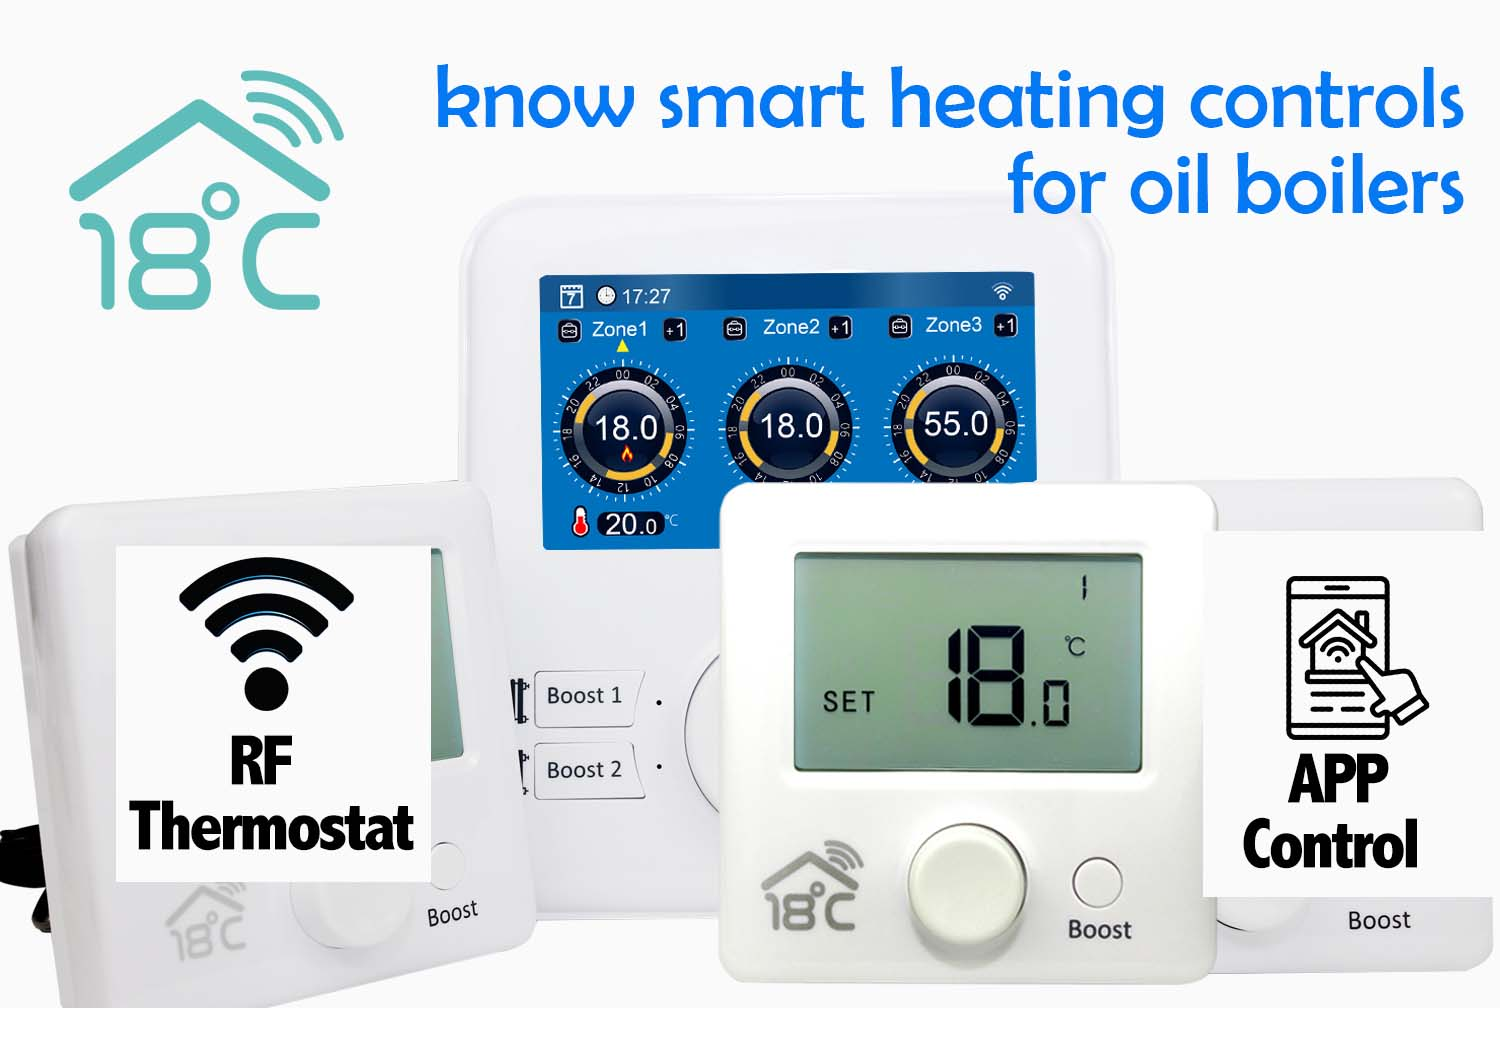 smart heating controls for oil boilers